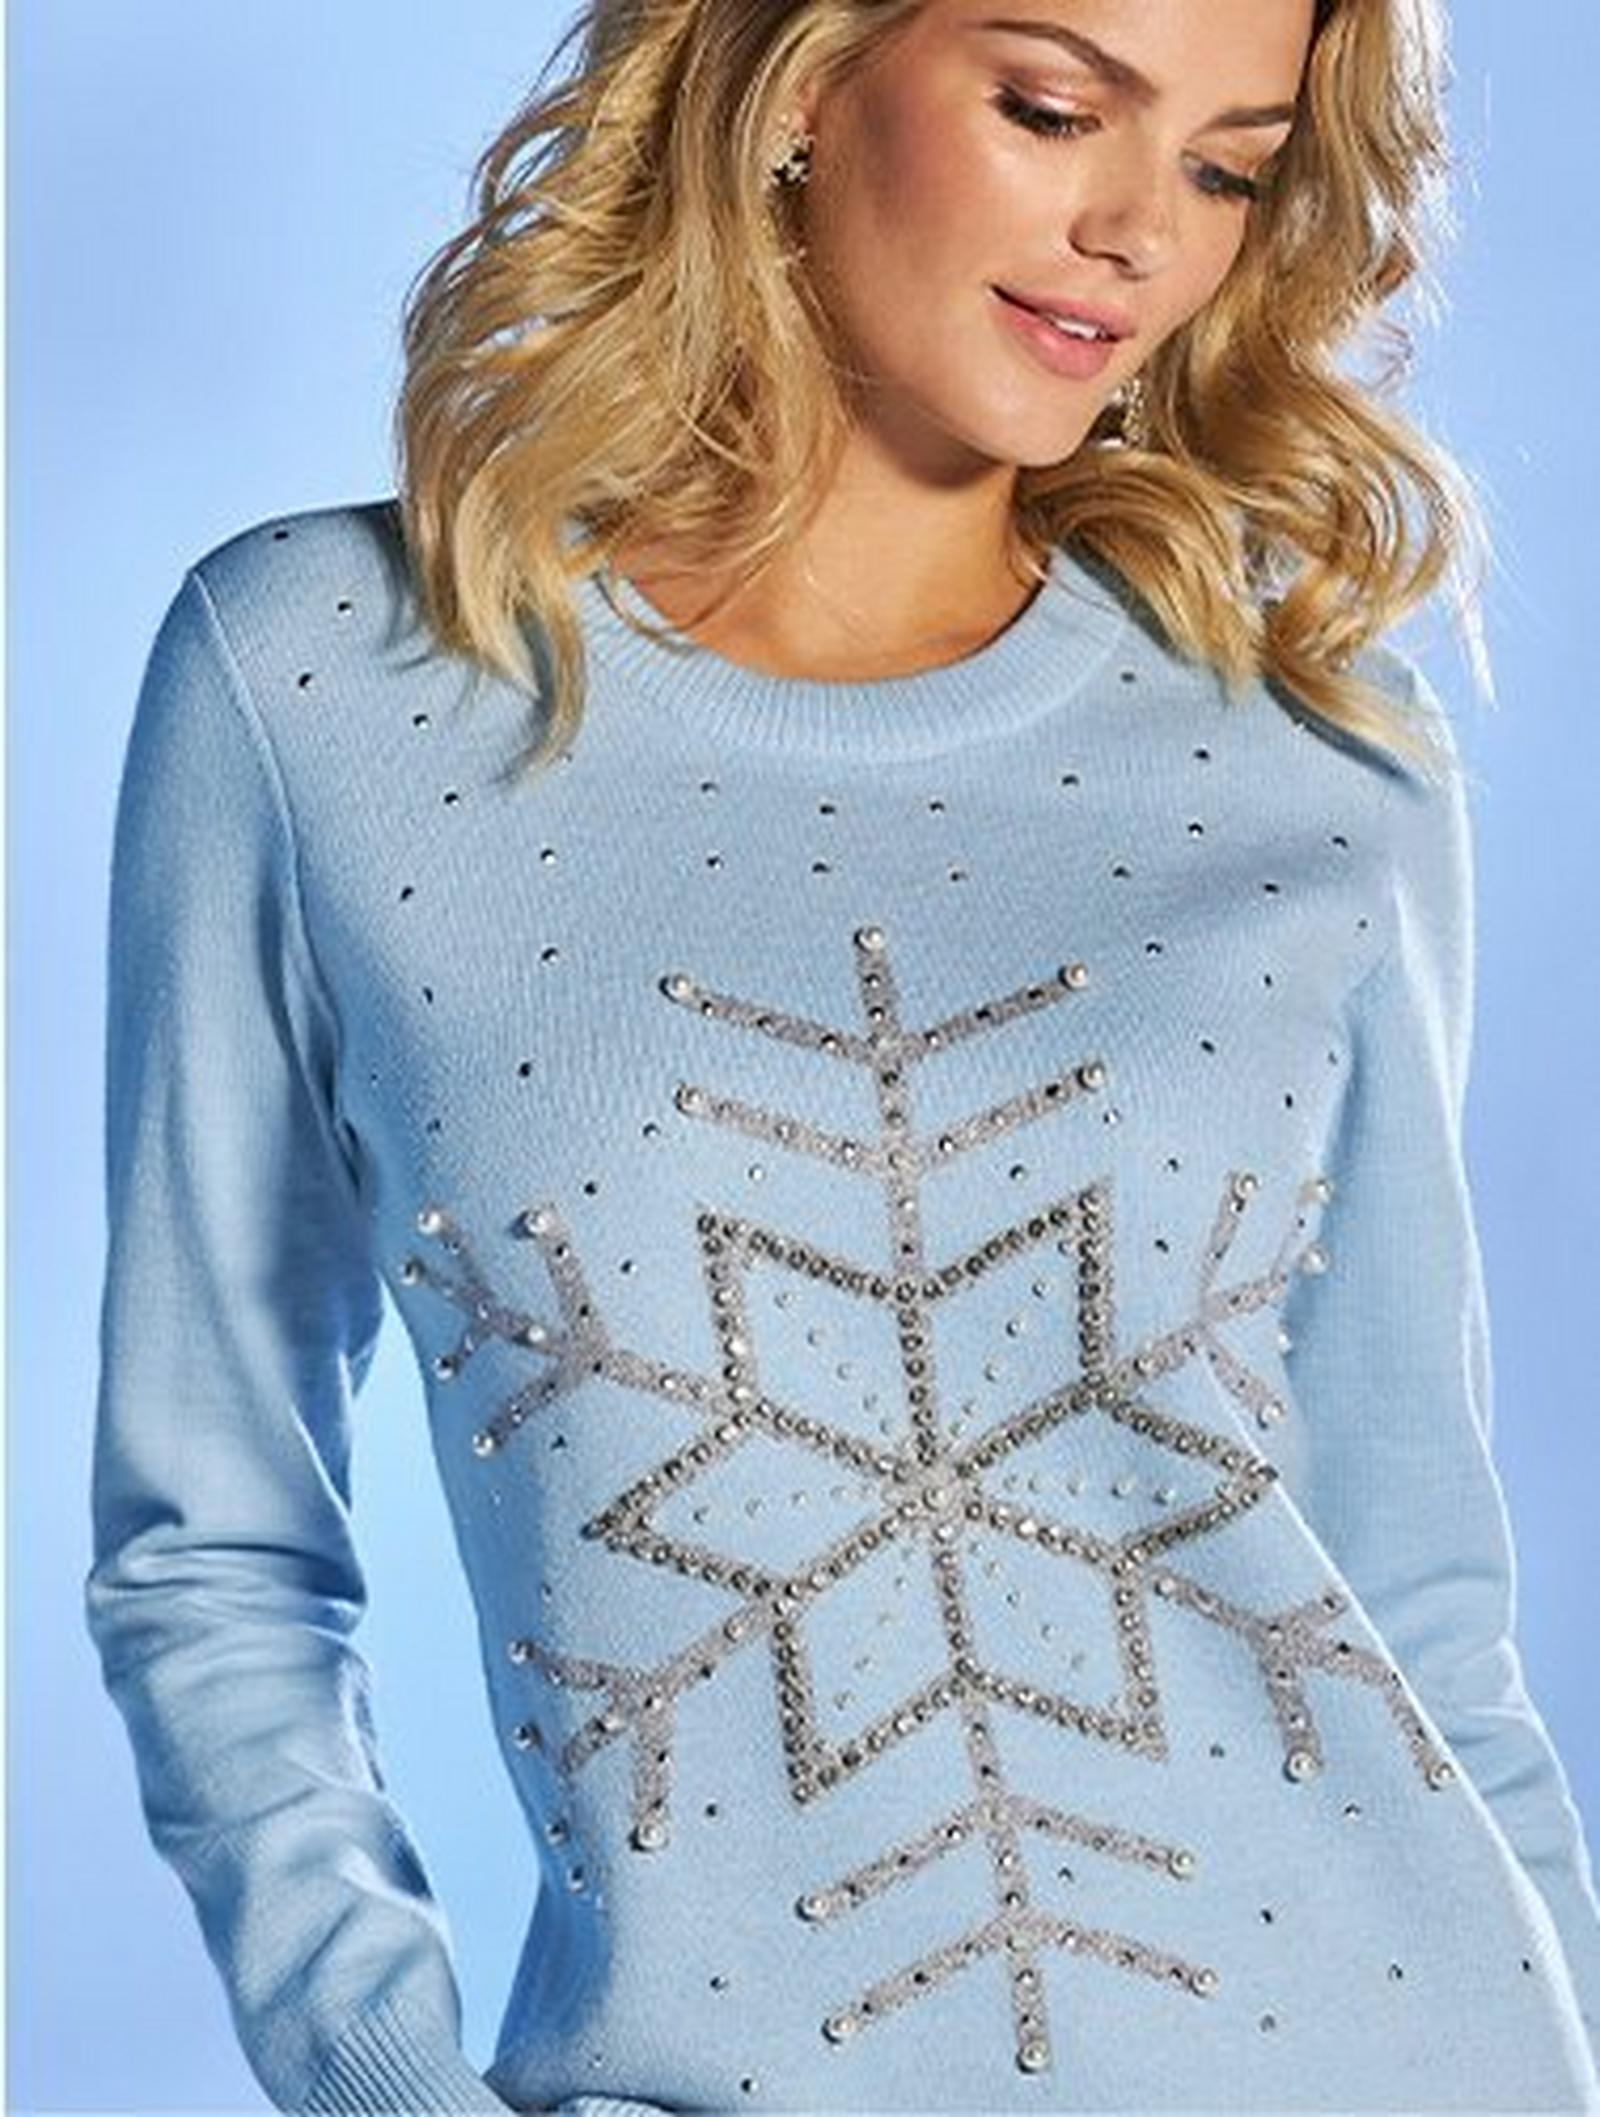 model wearing a light blue snowflake embellished pullover sweater.